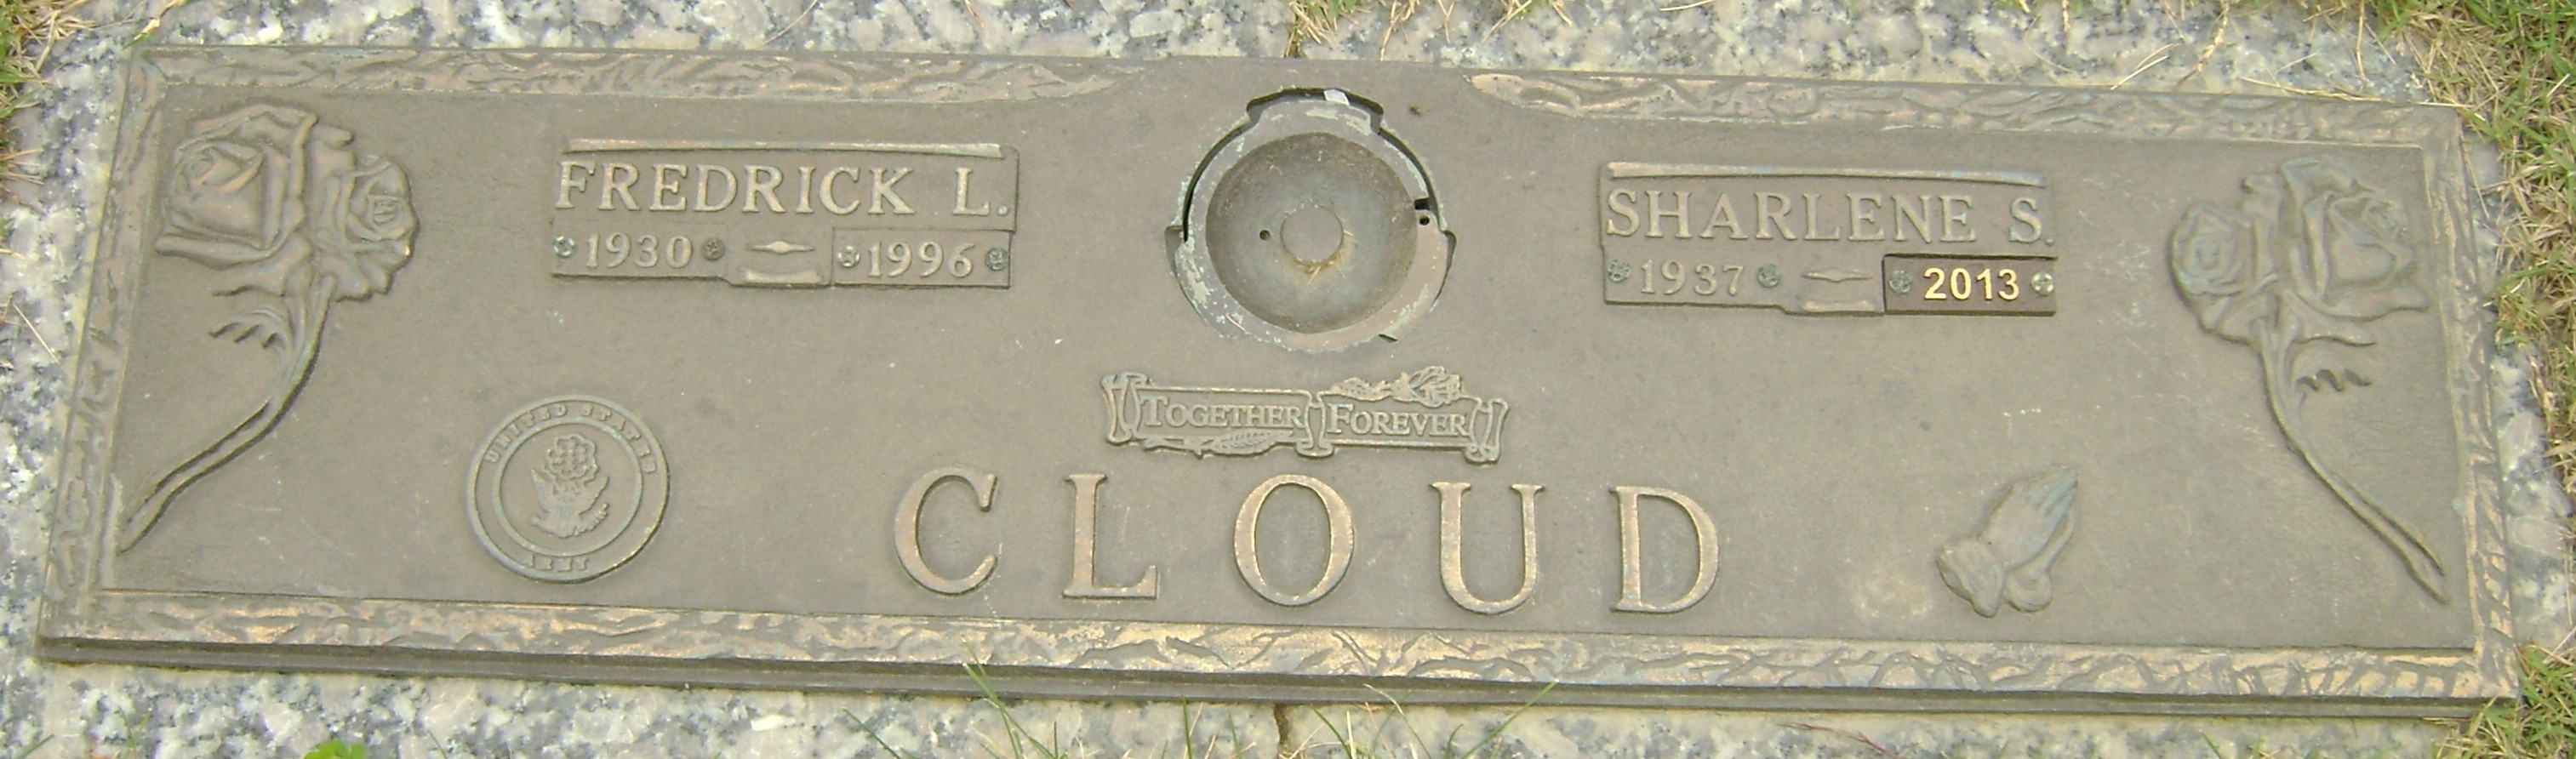 Frederick L Cloud - headstone